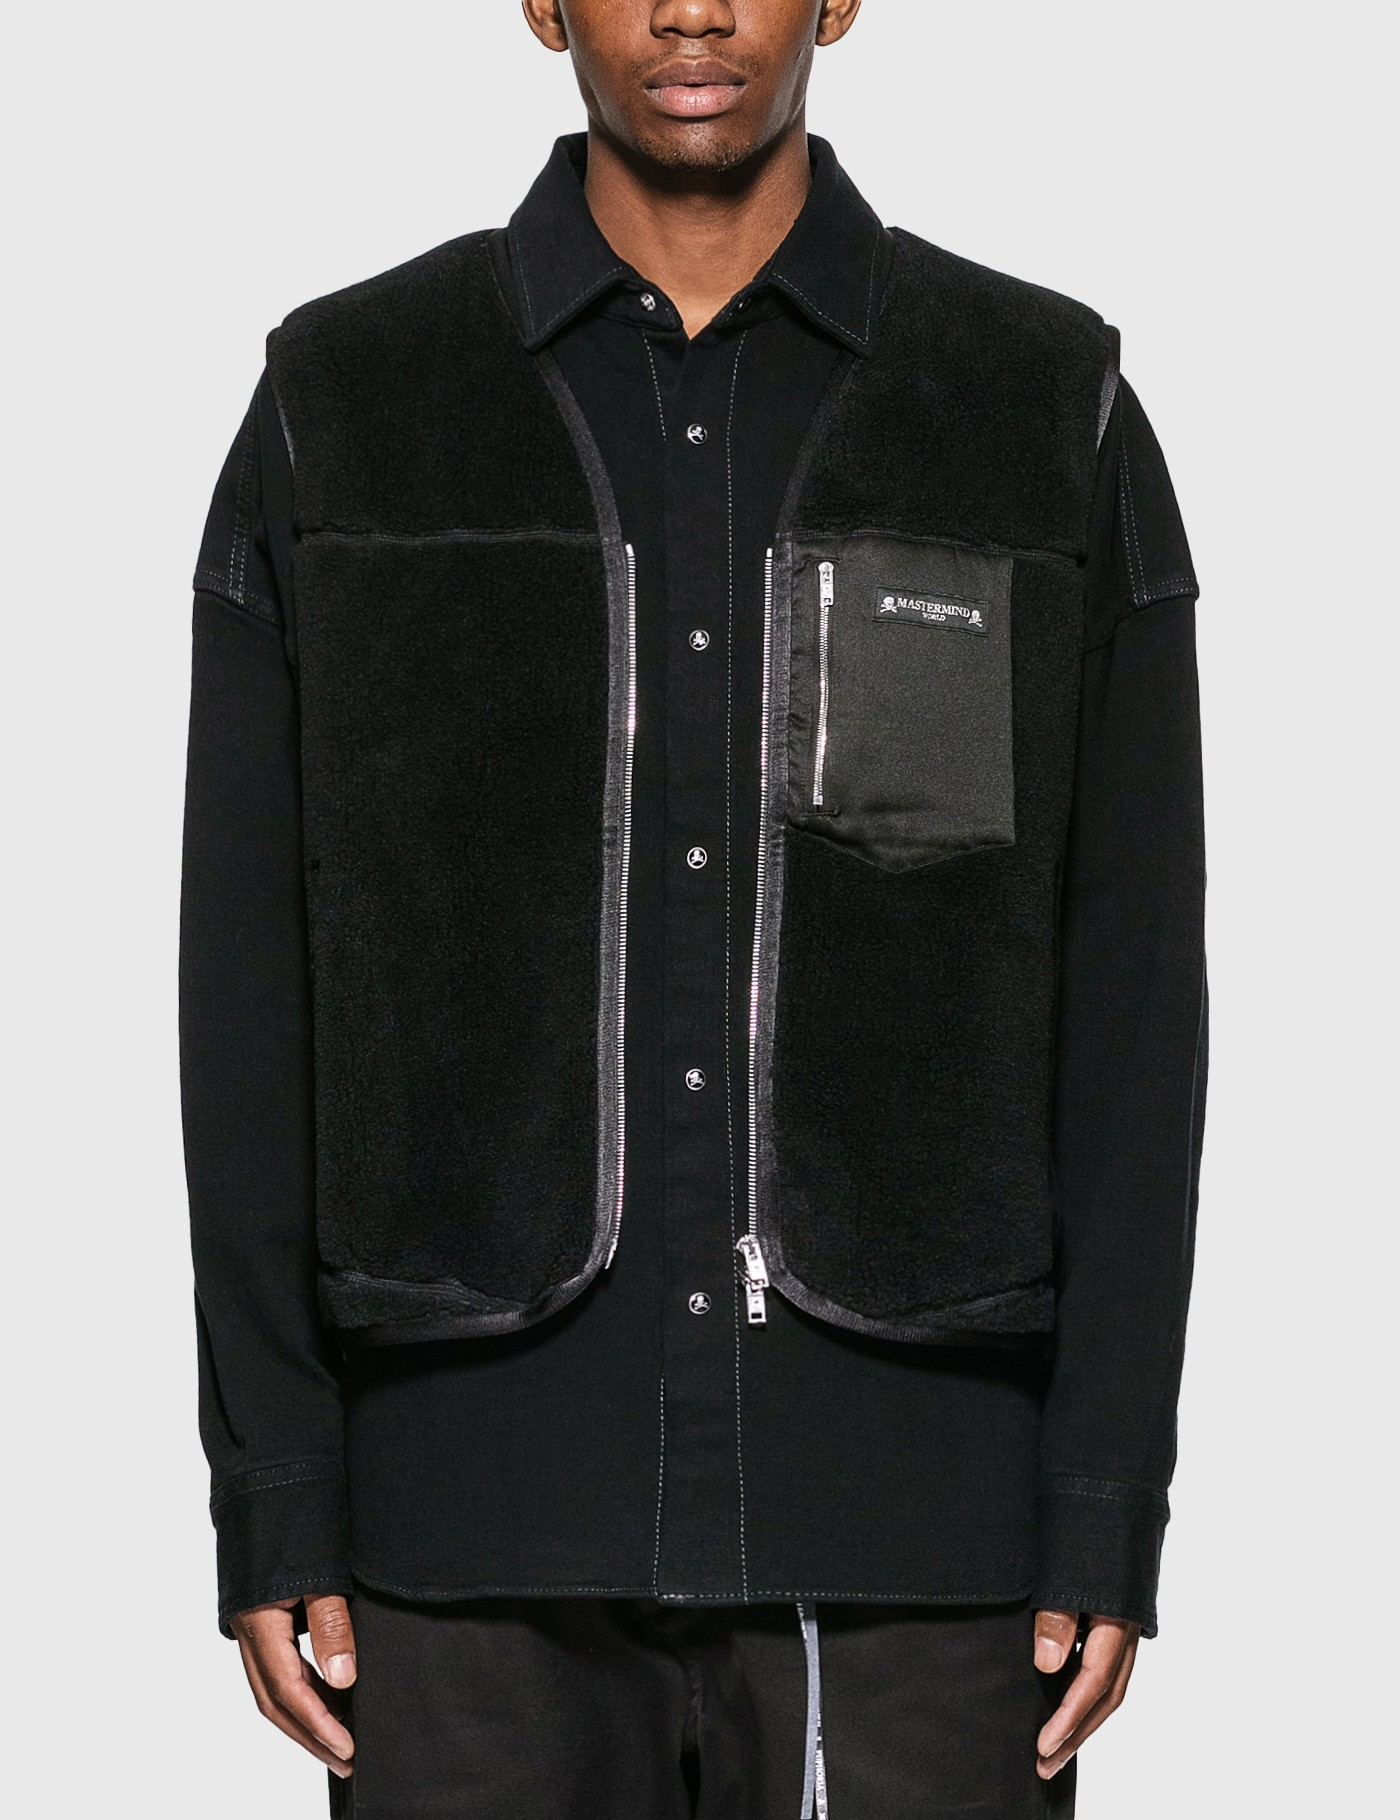 Mastermind World Stretch Denim Shirt With Vest